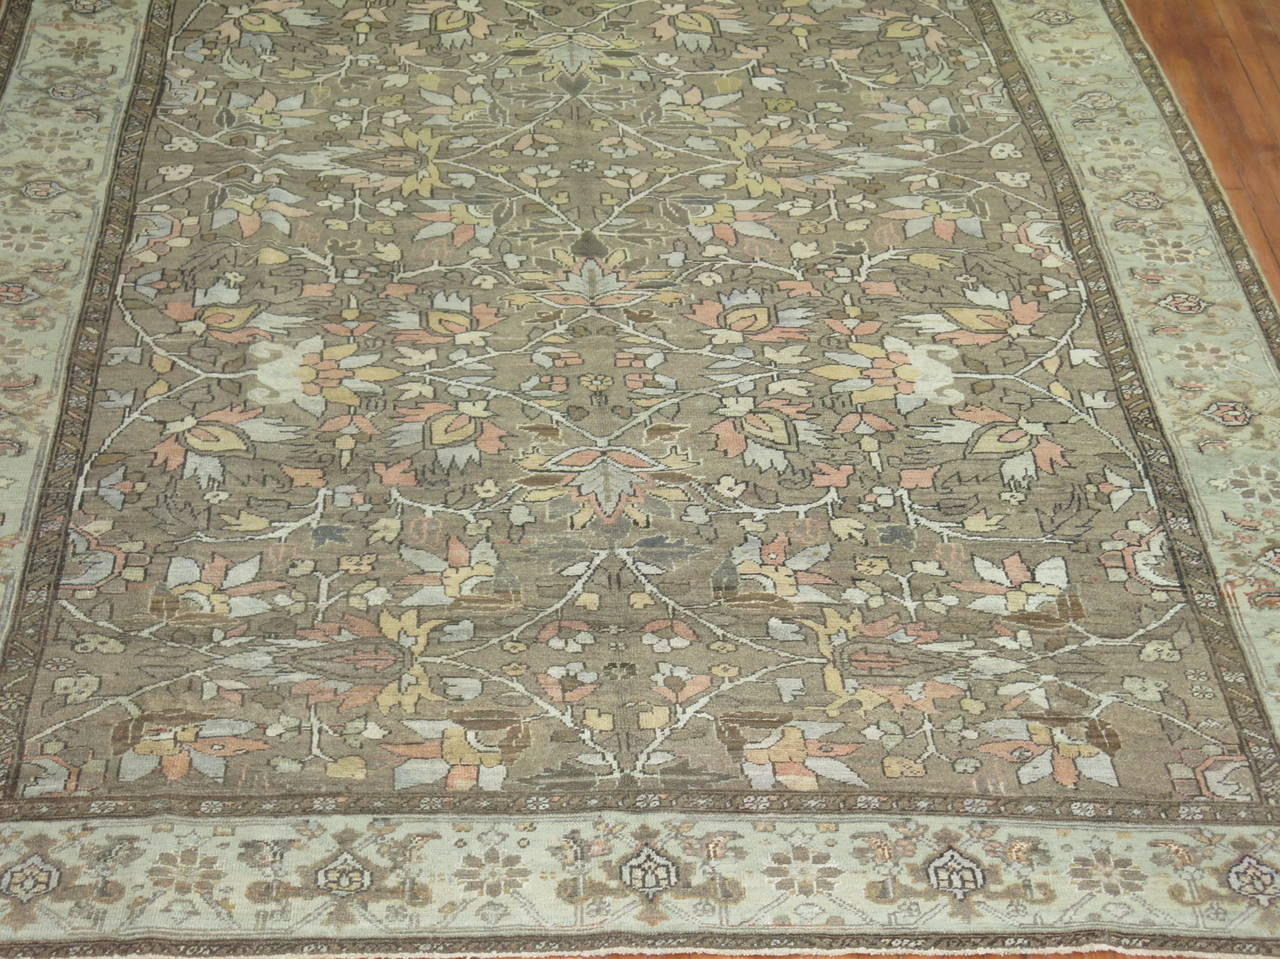 Hand-Knotted All-Over Antique Persian Heriz Carpet, circa 1920 For Sale